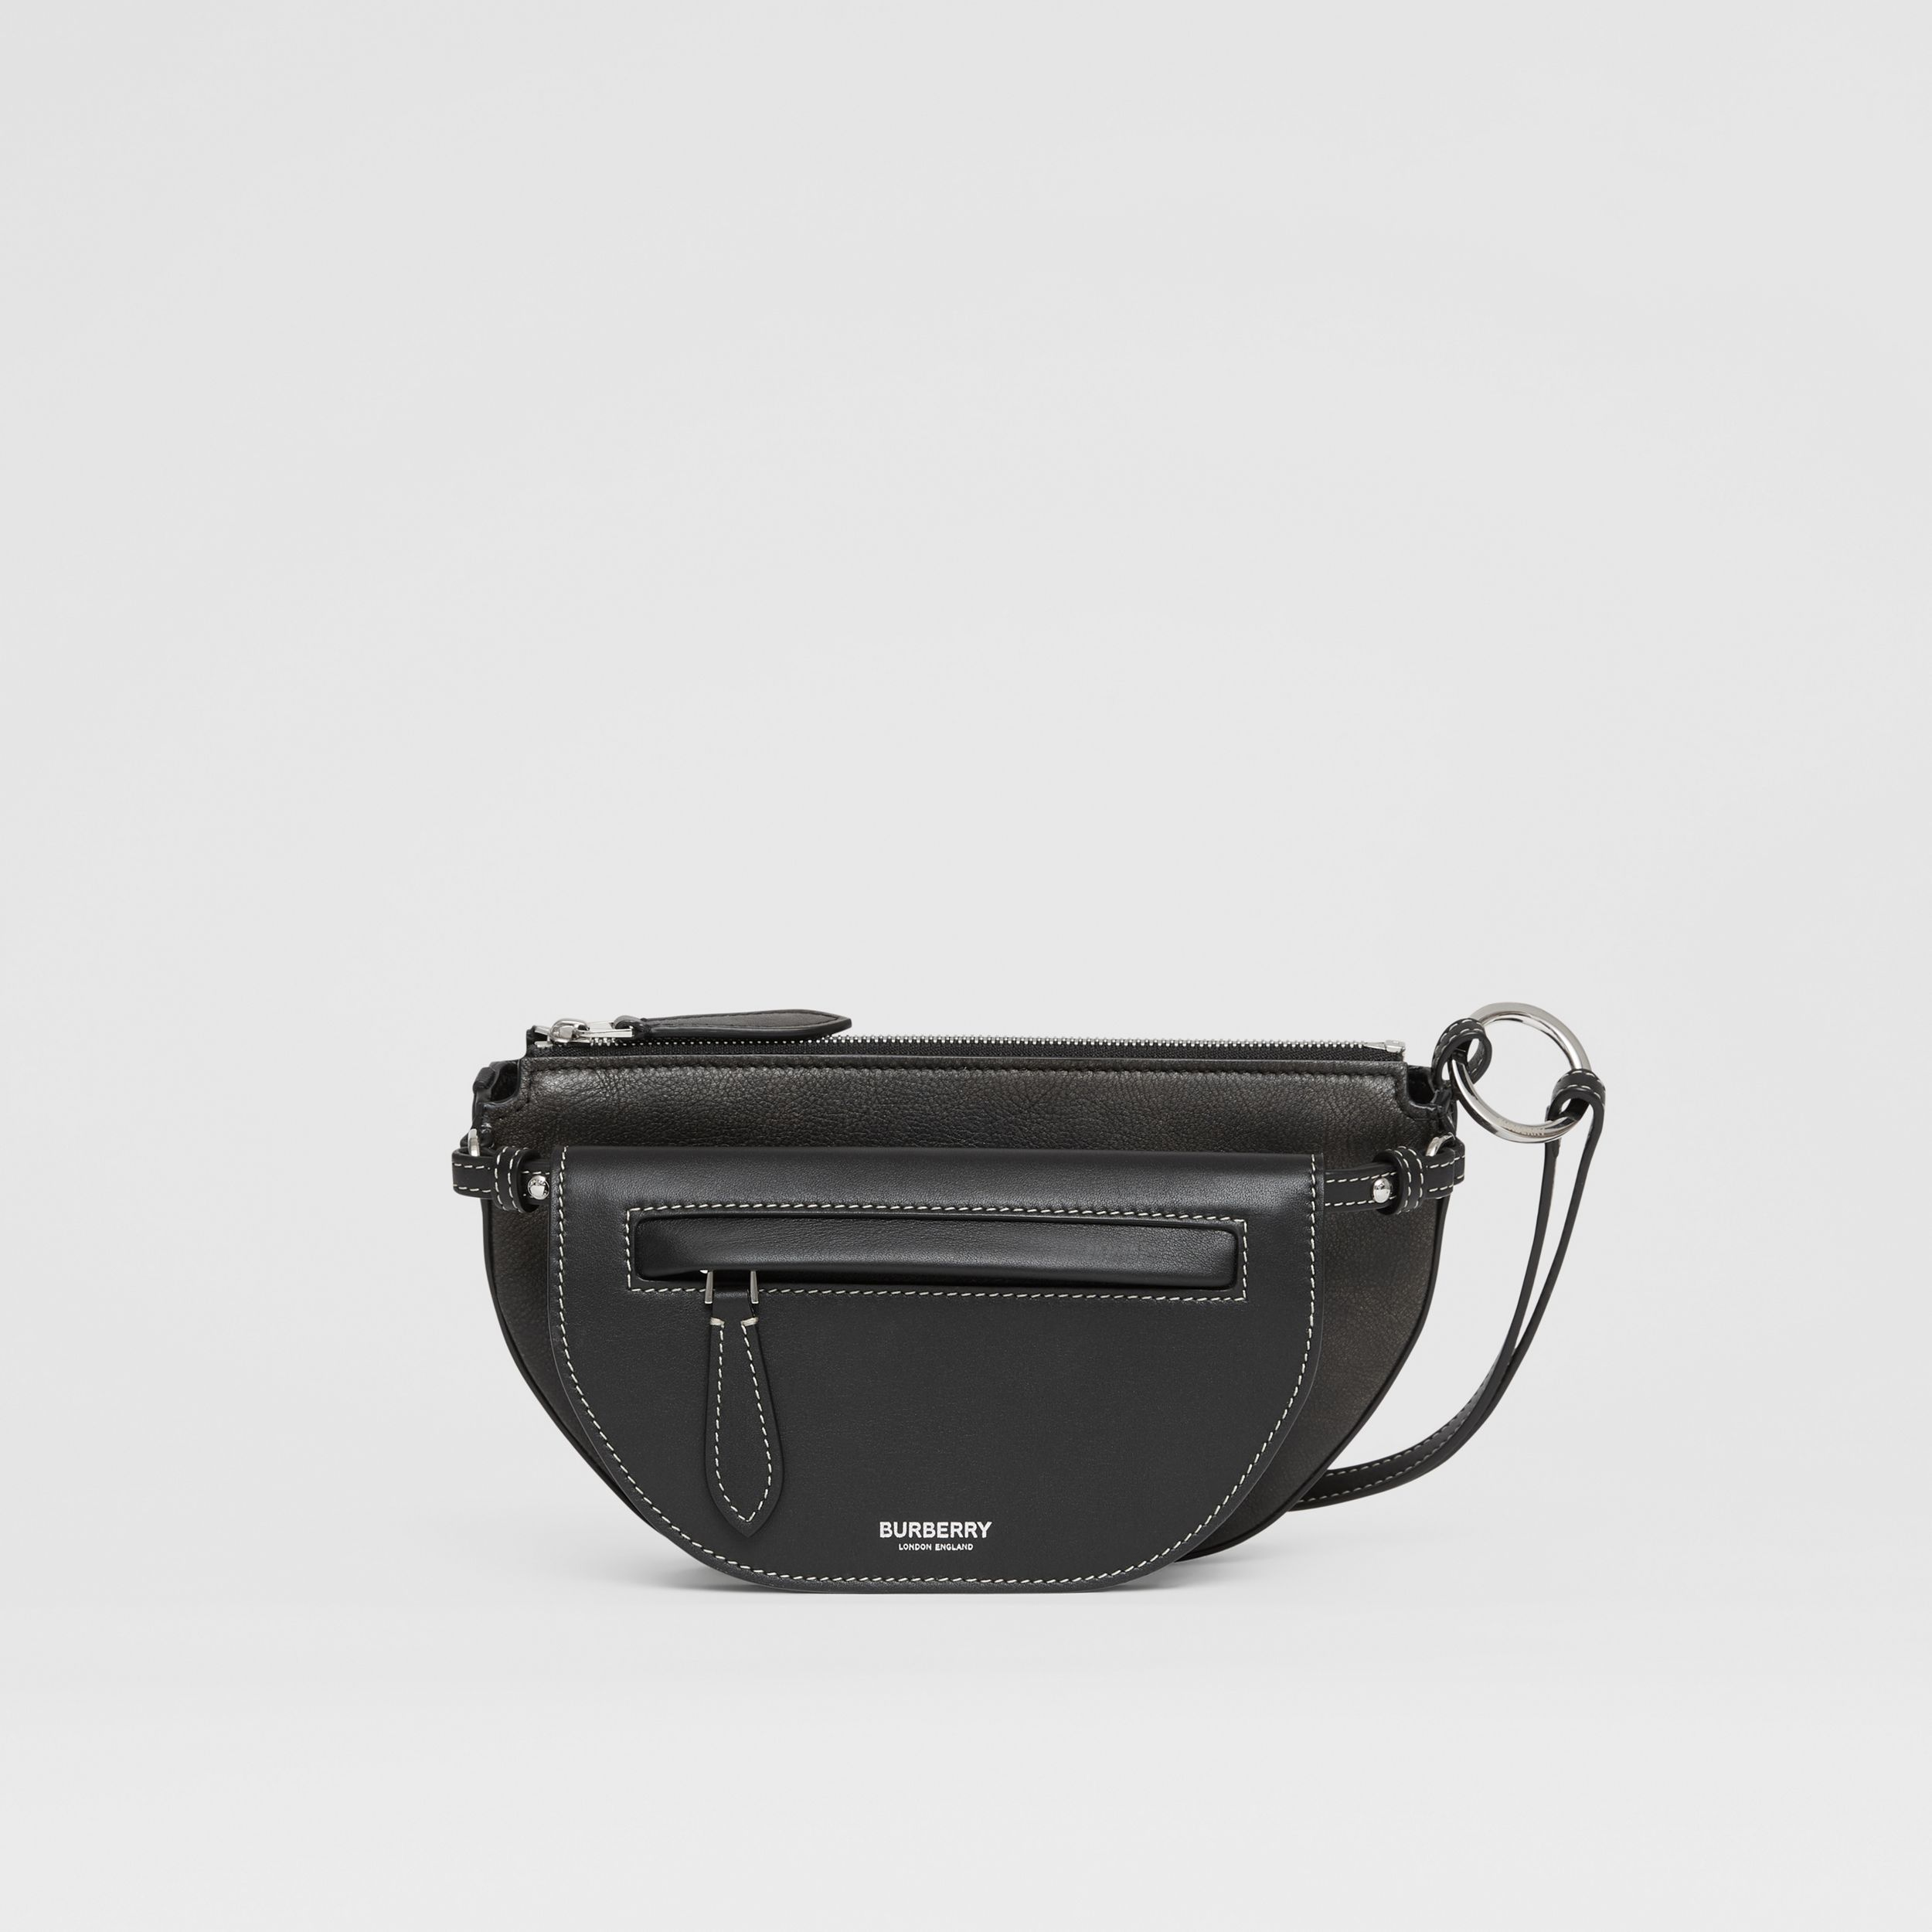 Mini Leather Double Olympia Bag in Black - Women | Burberry Canada - 1